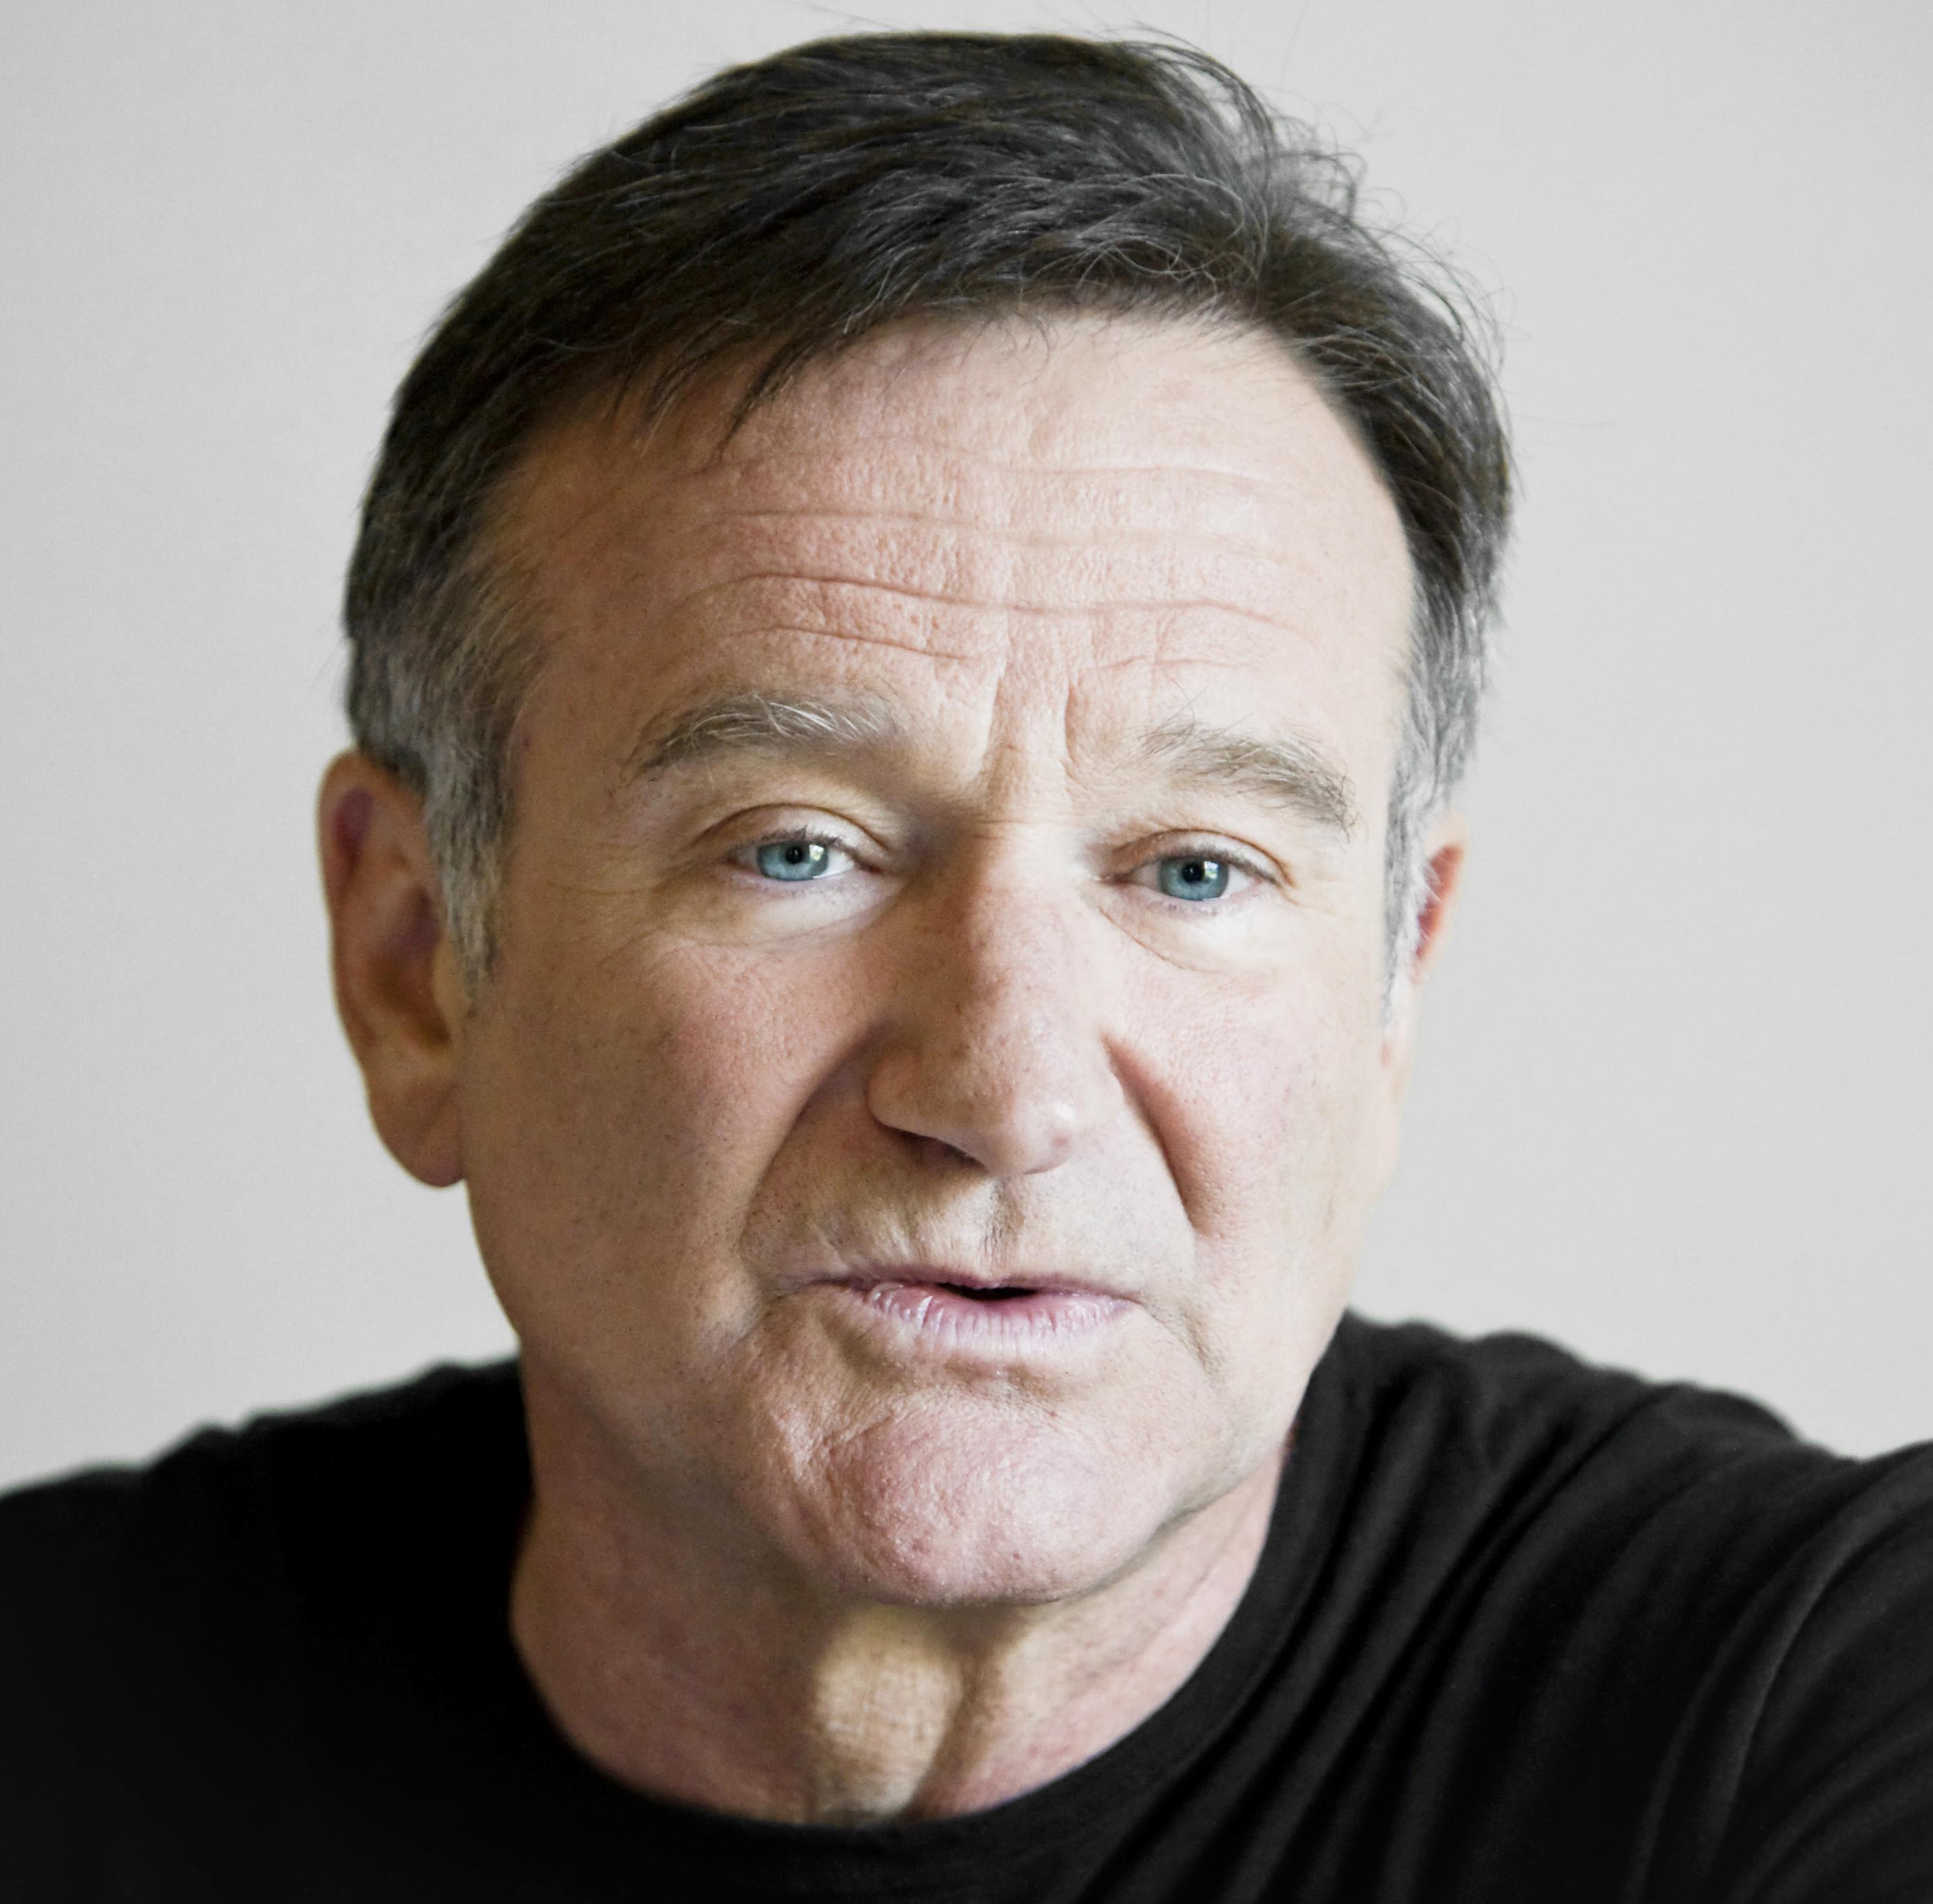 Robin Williams: Anti-Gay Church Group Plan Protest at Actor's Memorial bwin.com bwin.com bwin casino app android bwinbwin ...